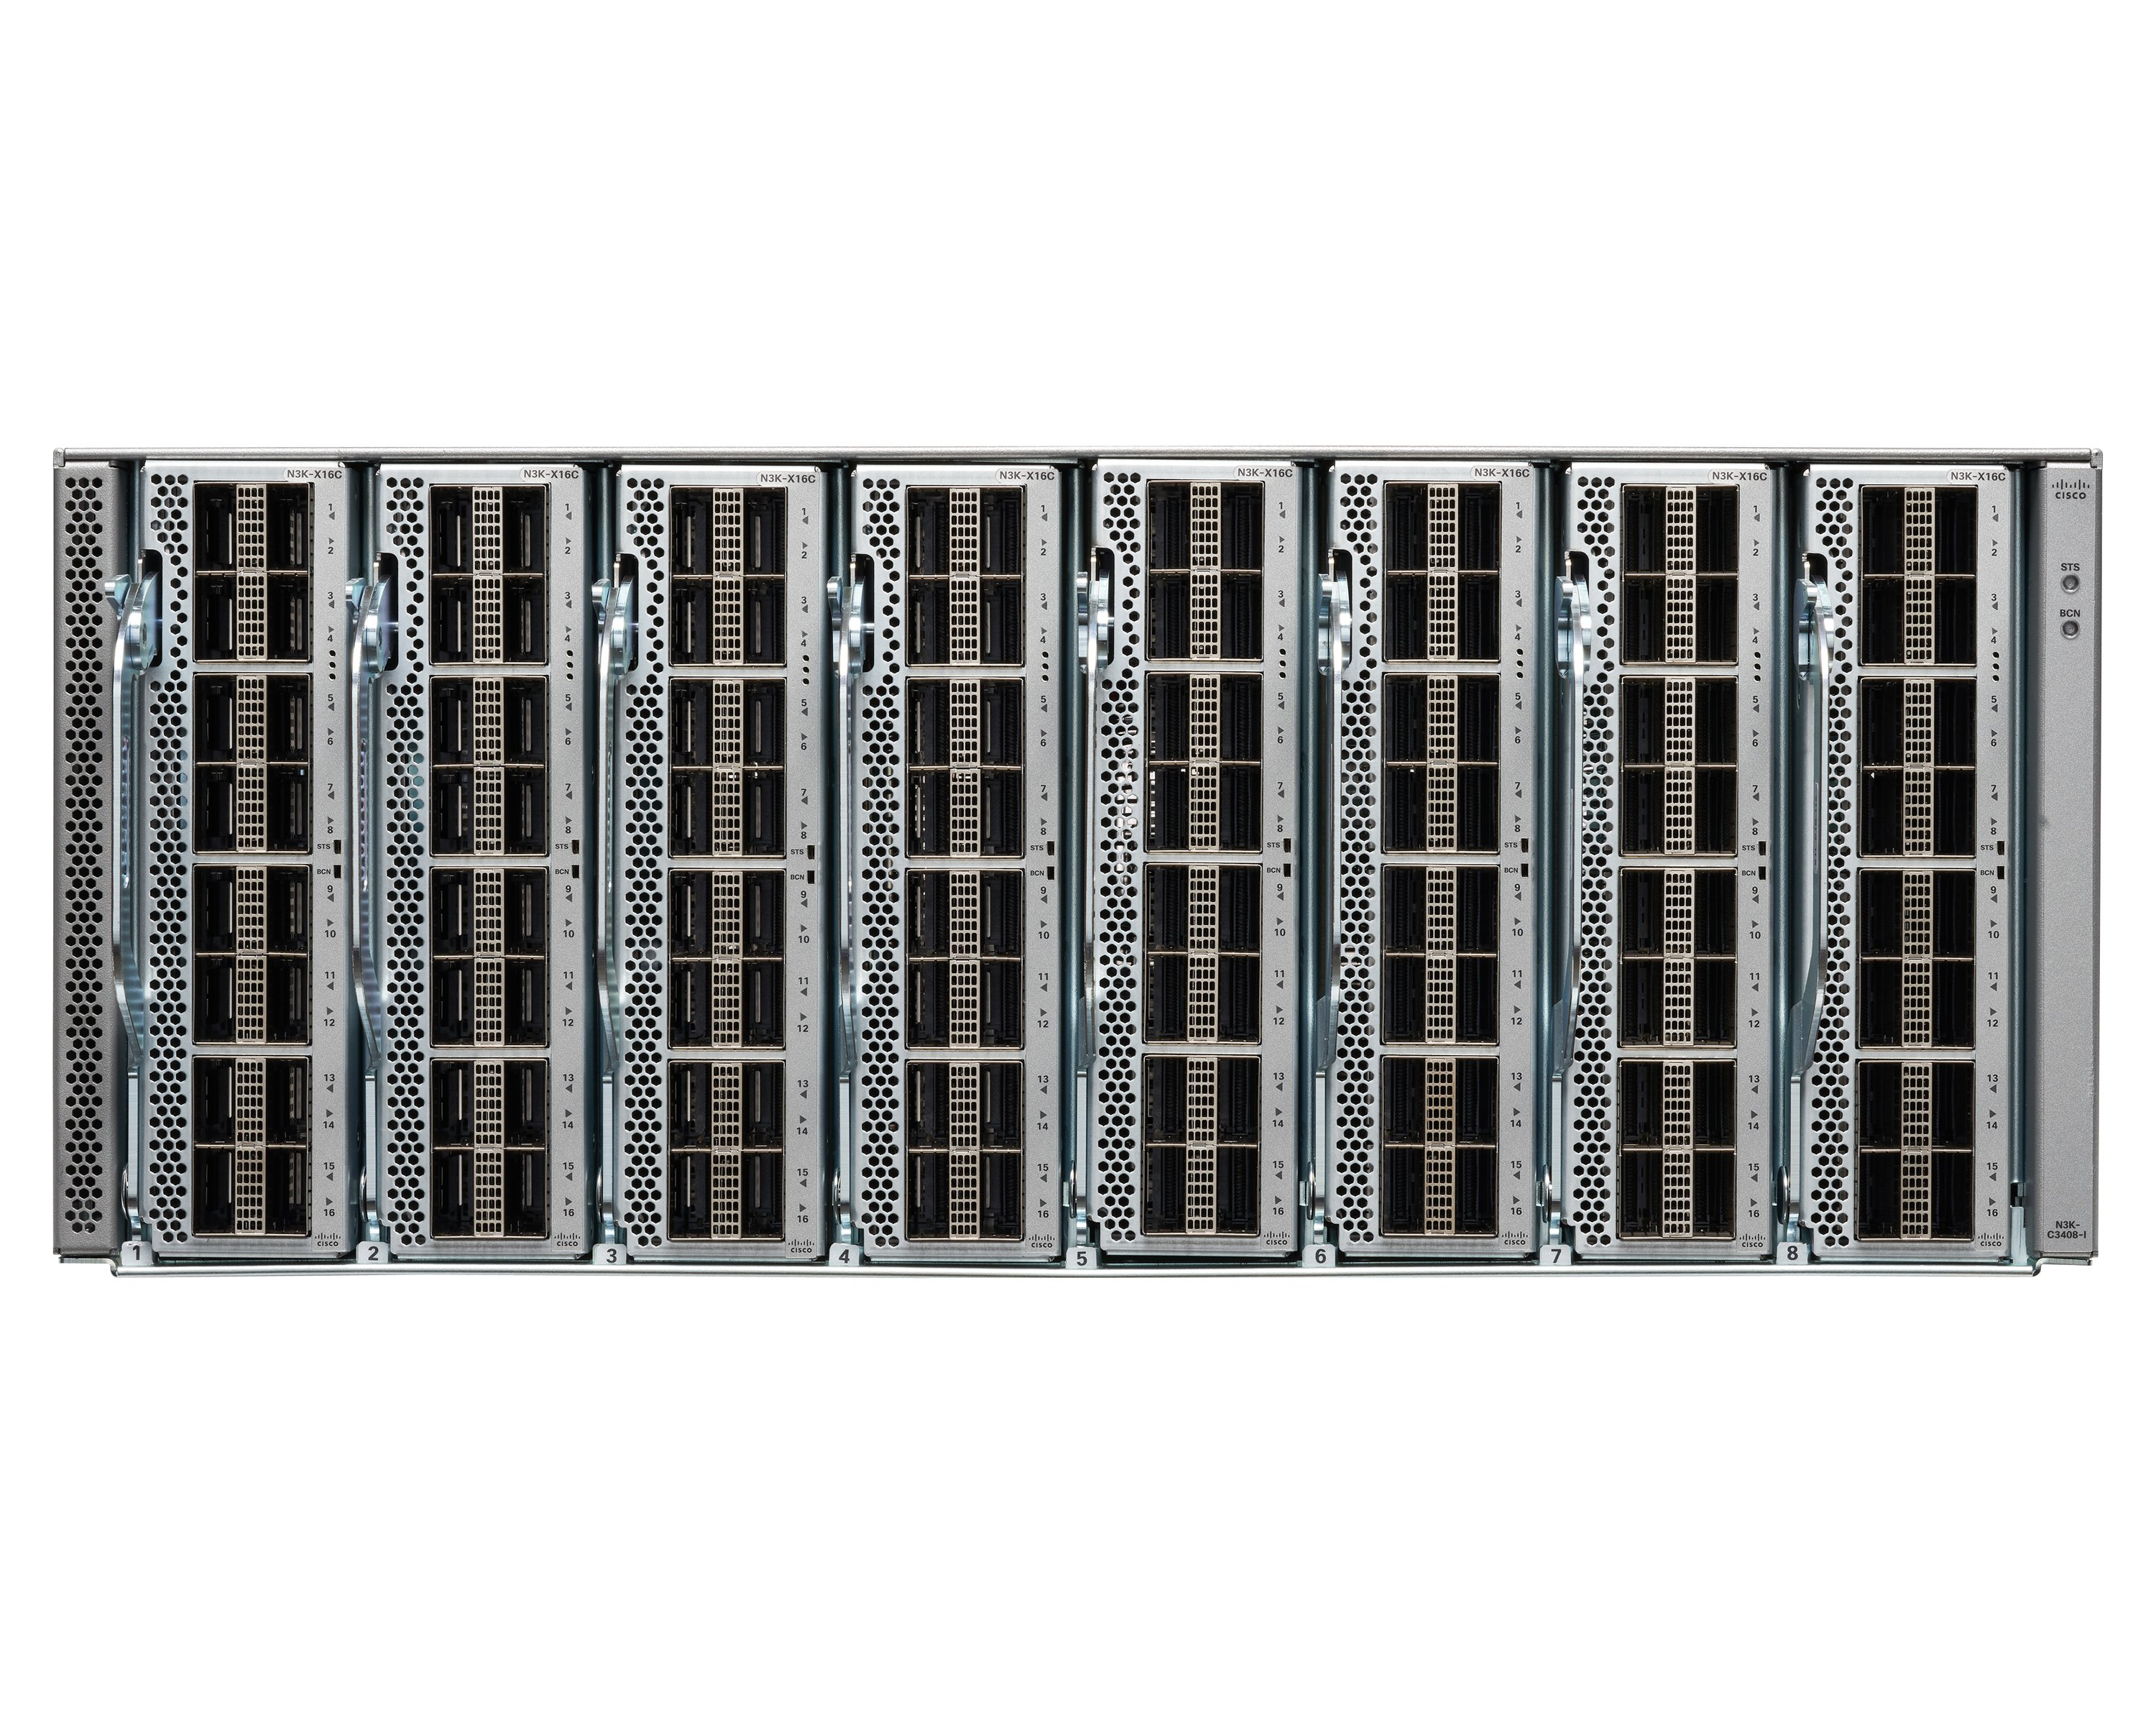 Cisco joins the march to 400GbE data center switches - DCD